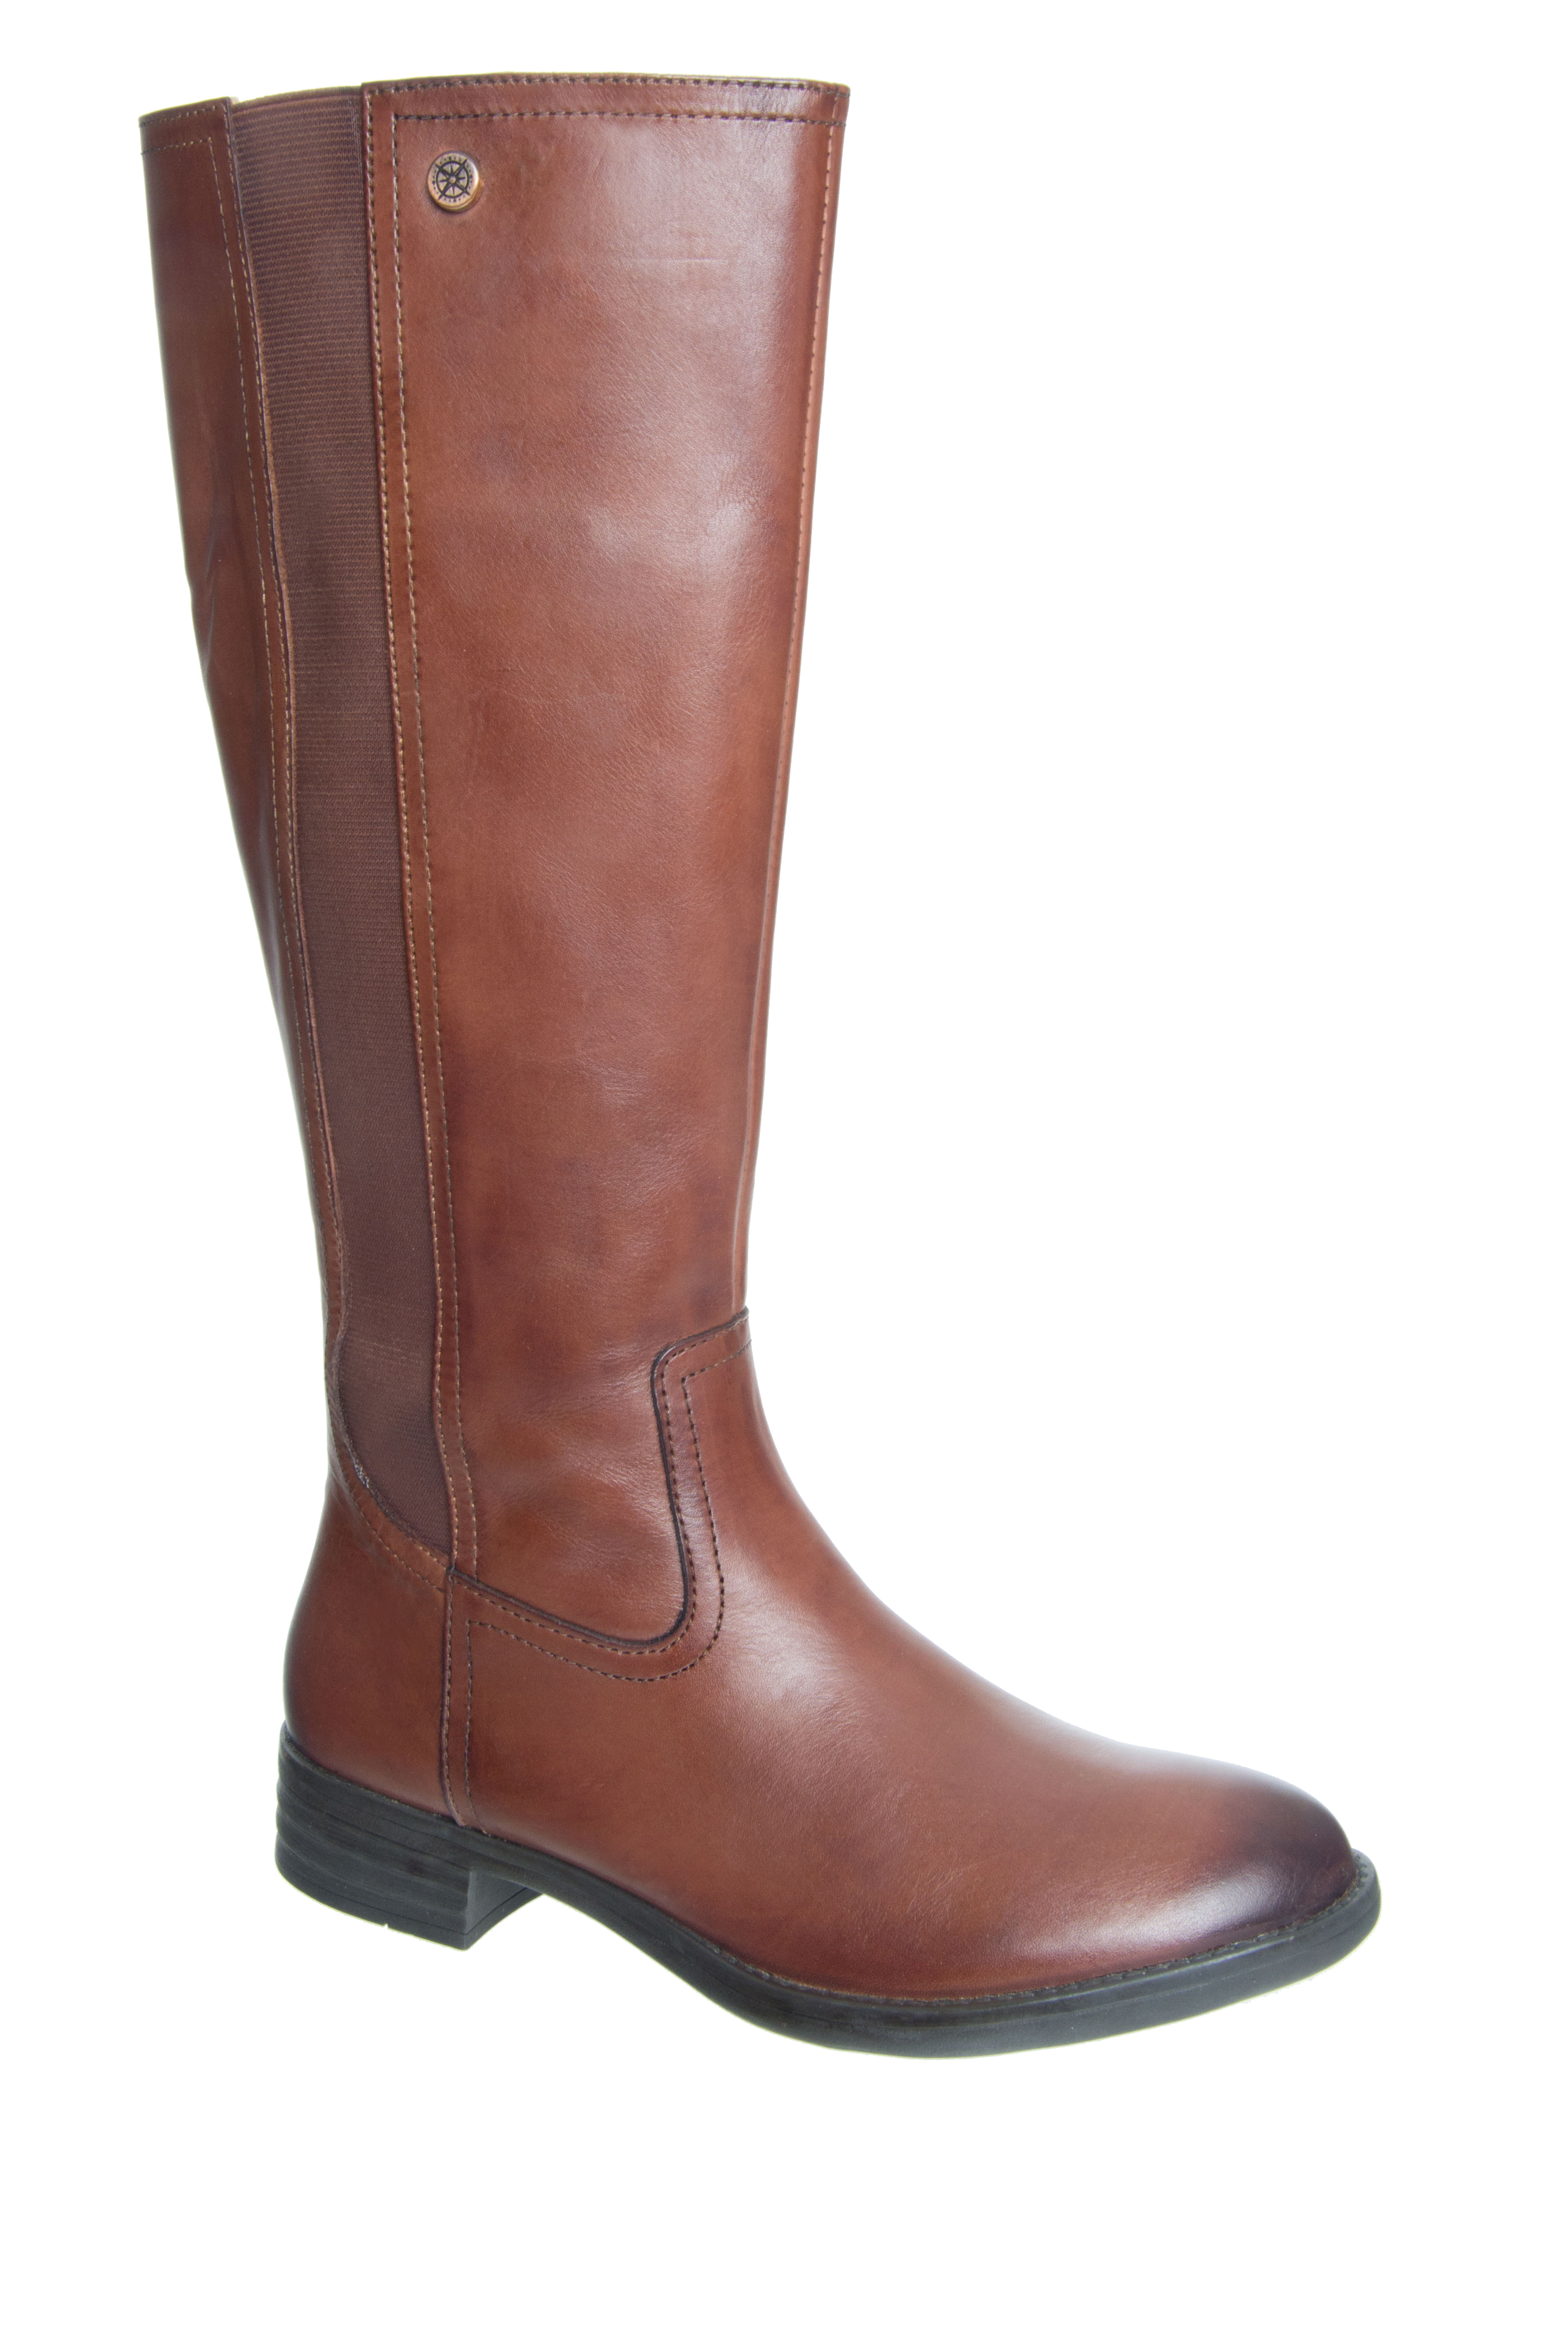 Bussola Tyra Mid Calf Boots - Russet